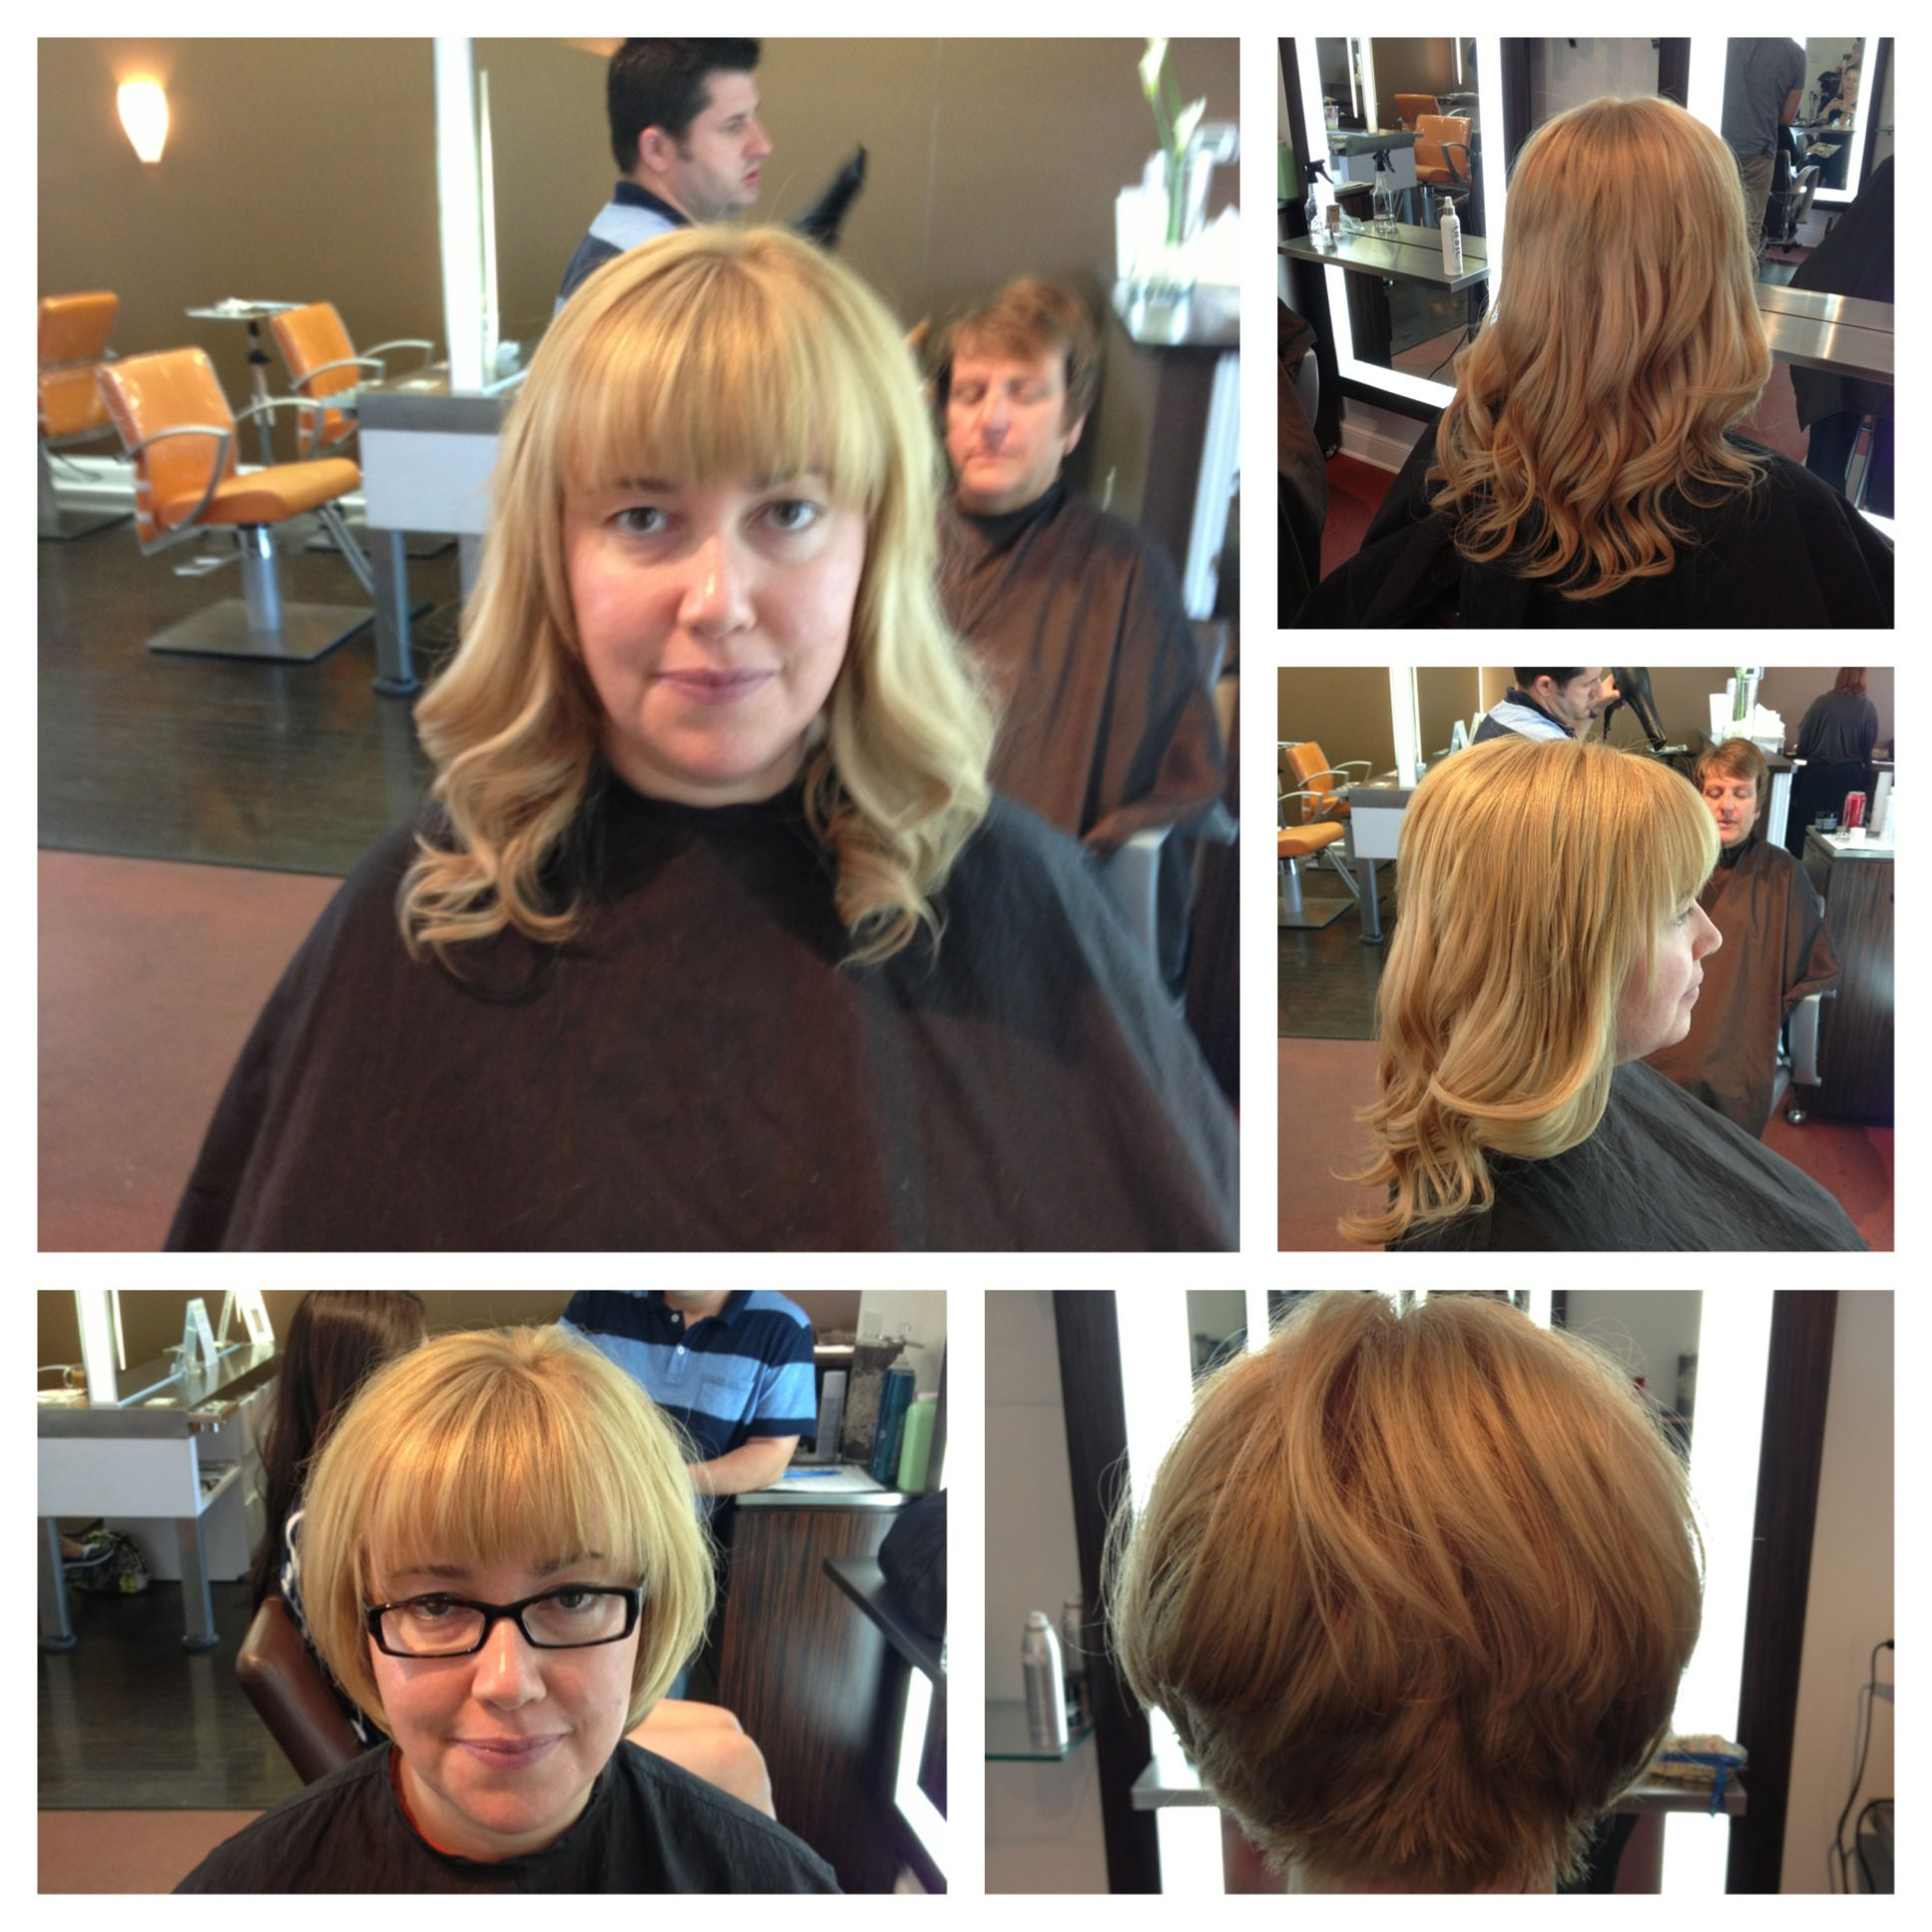 Hot Heads Hair Extension Before And After By Jacky Haircuttery